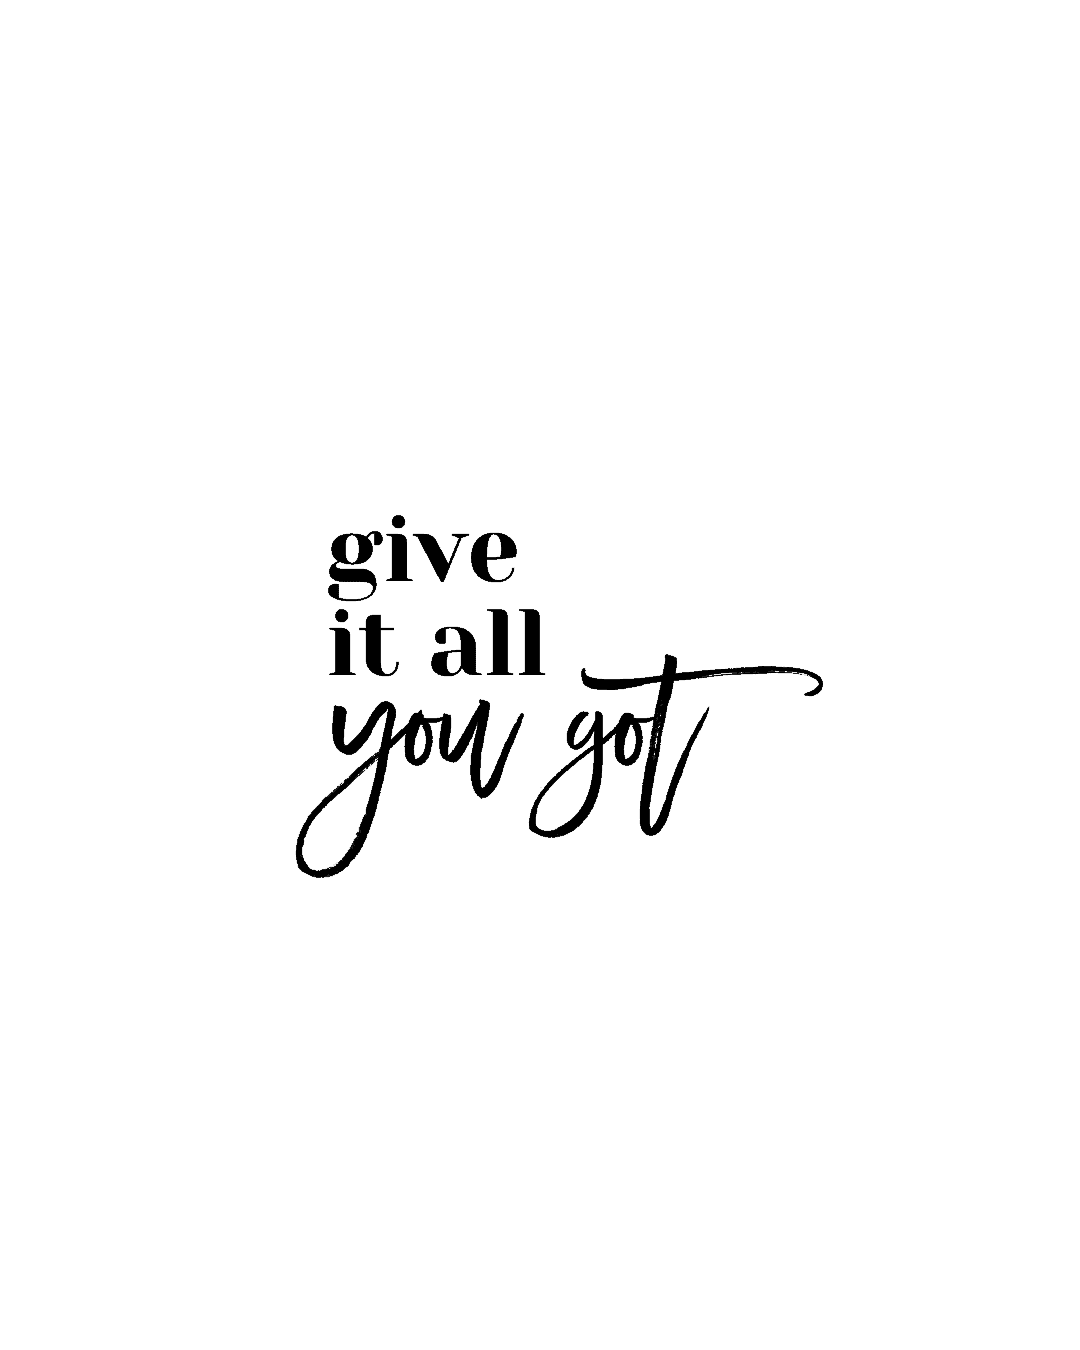 Image of text that reads: give it all you got